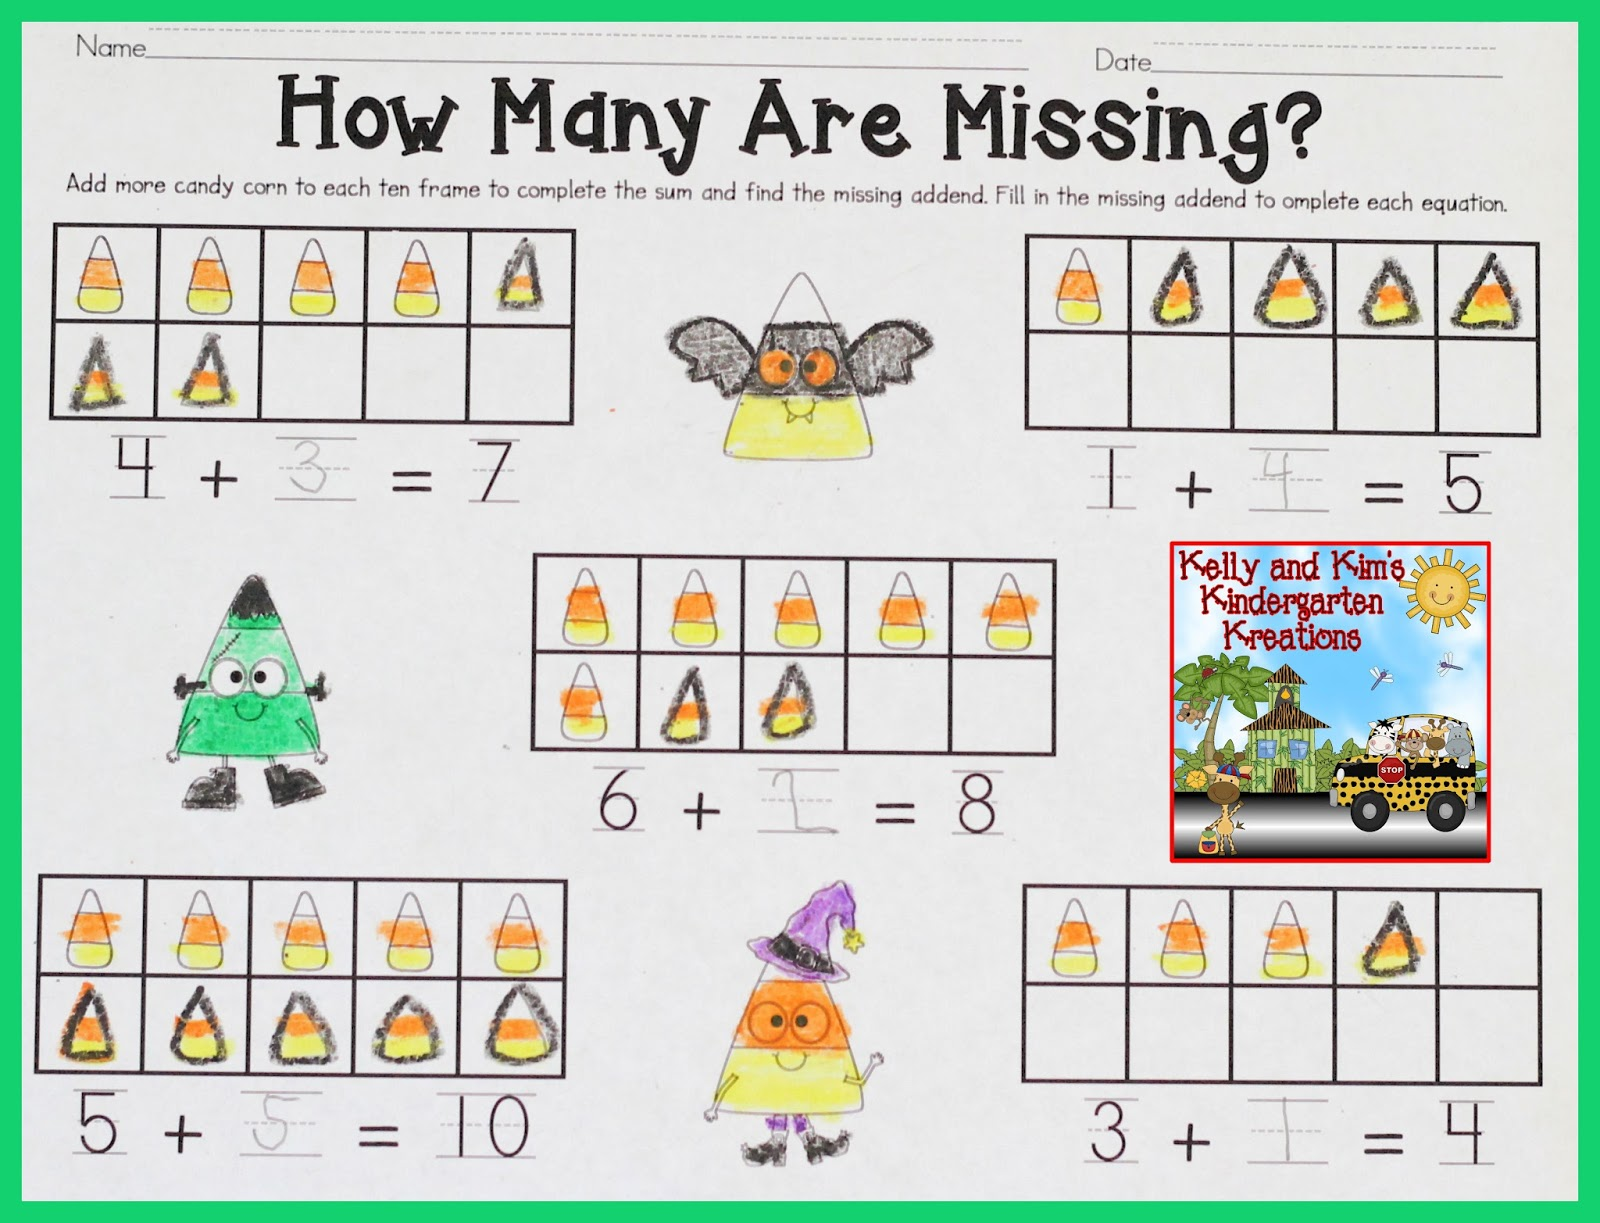 worksheet Missing Addend missing addend multiplication practice pages kelly and kims kindergarten kreations markdown monday linky img 4806 party october 22html addend